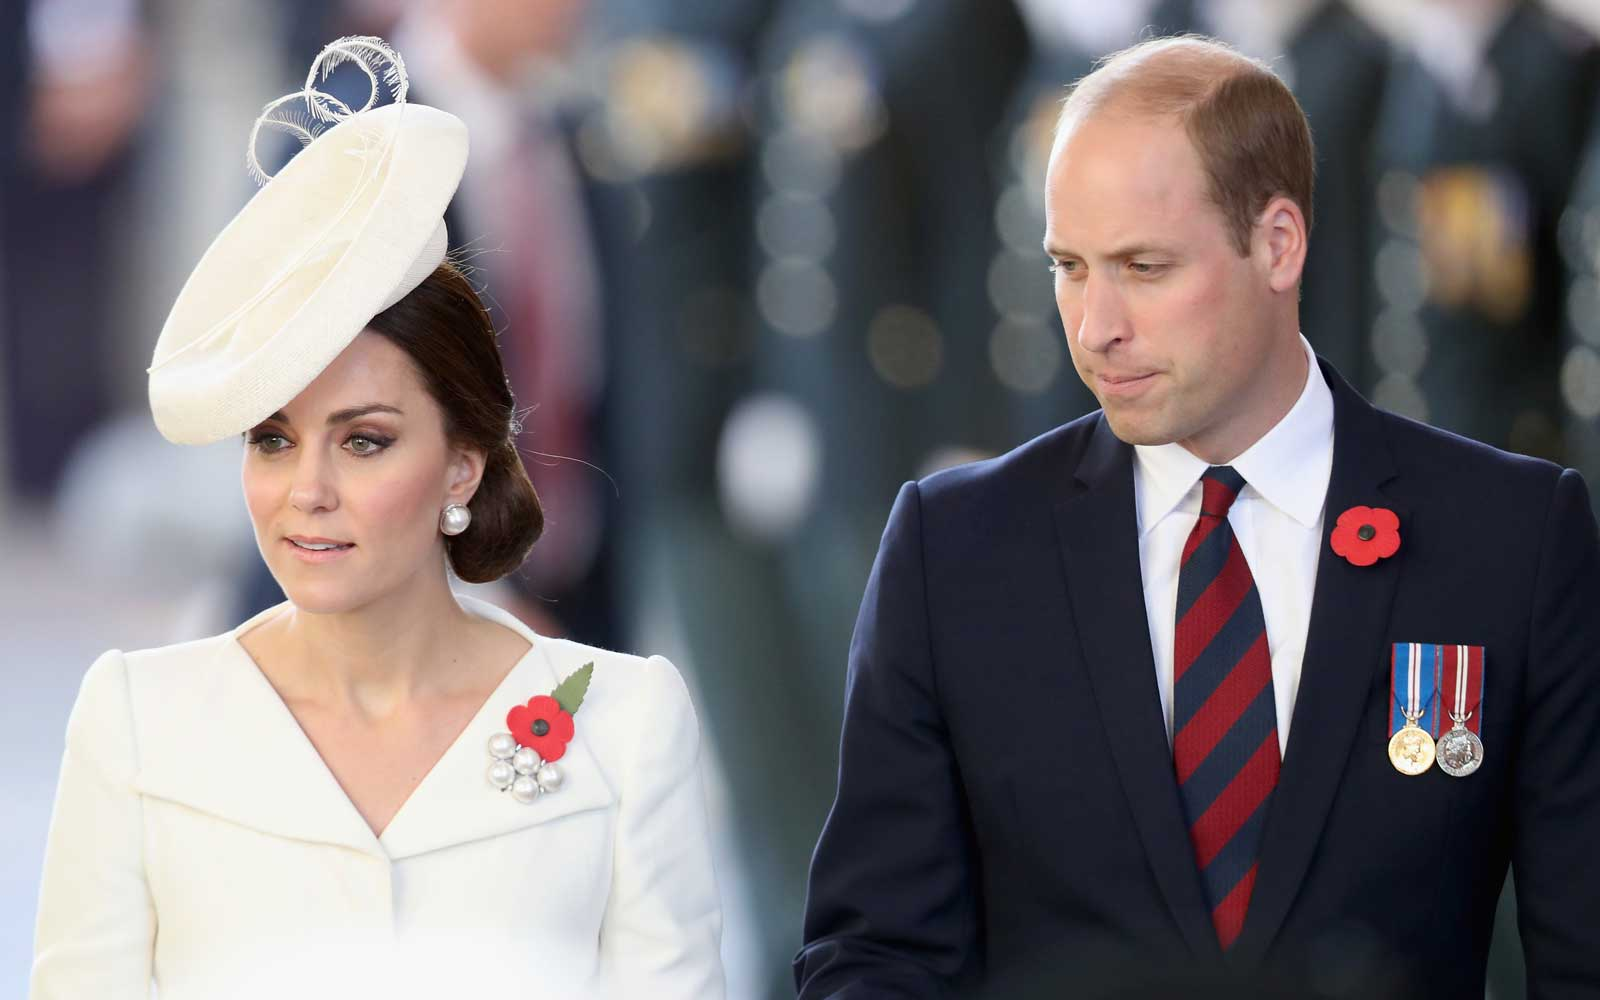 Why Kate Middleton and Prince William Can't Show PDA Like Prince Harry and Meghan Markle